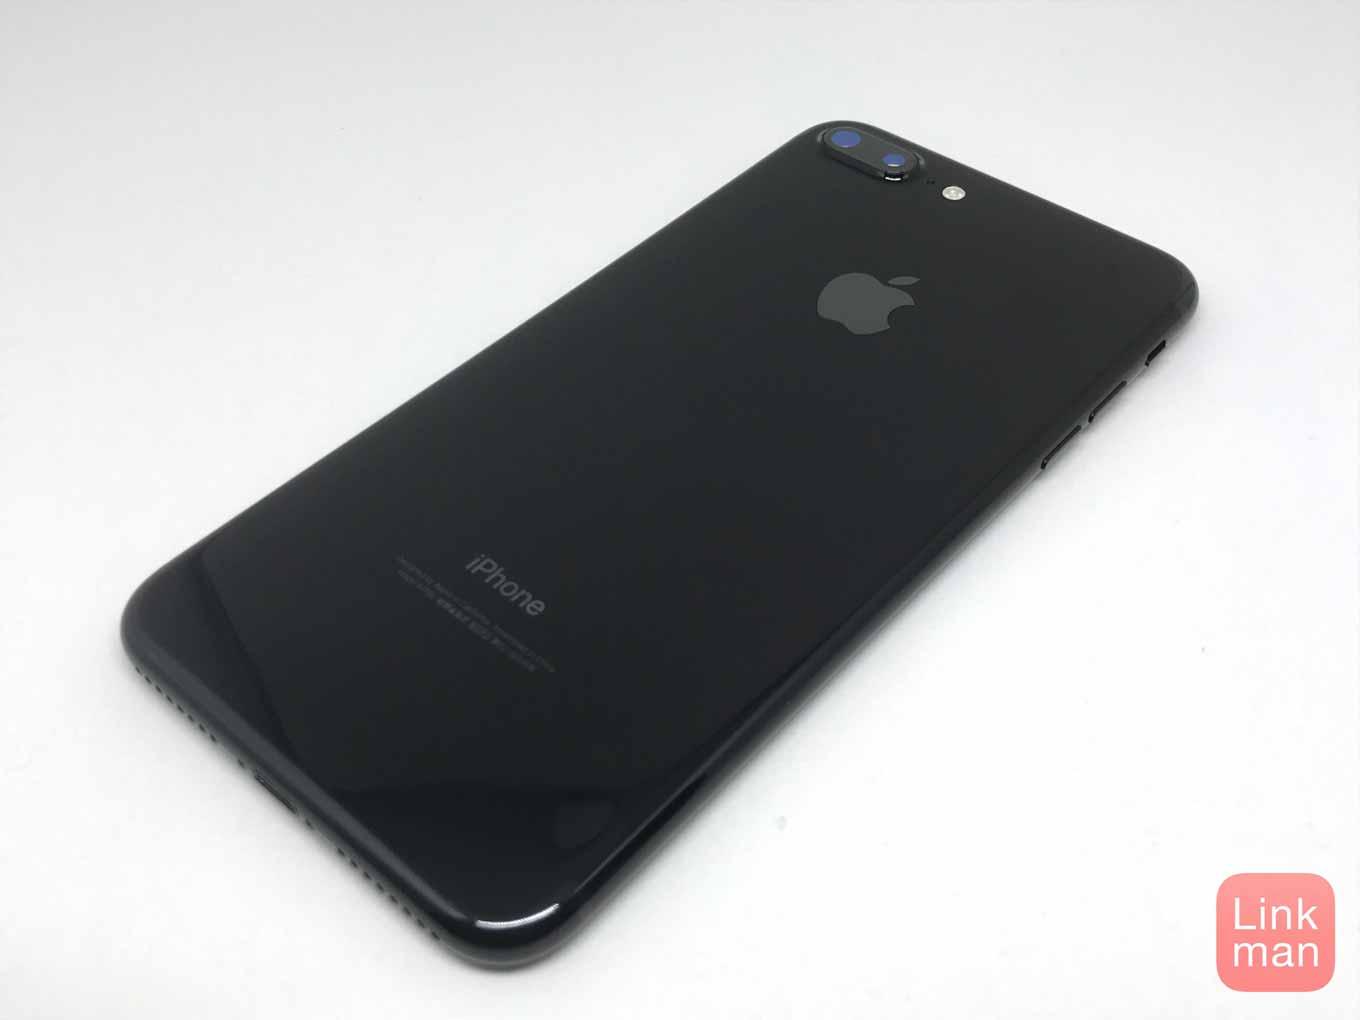 Jetblackiphone